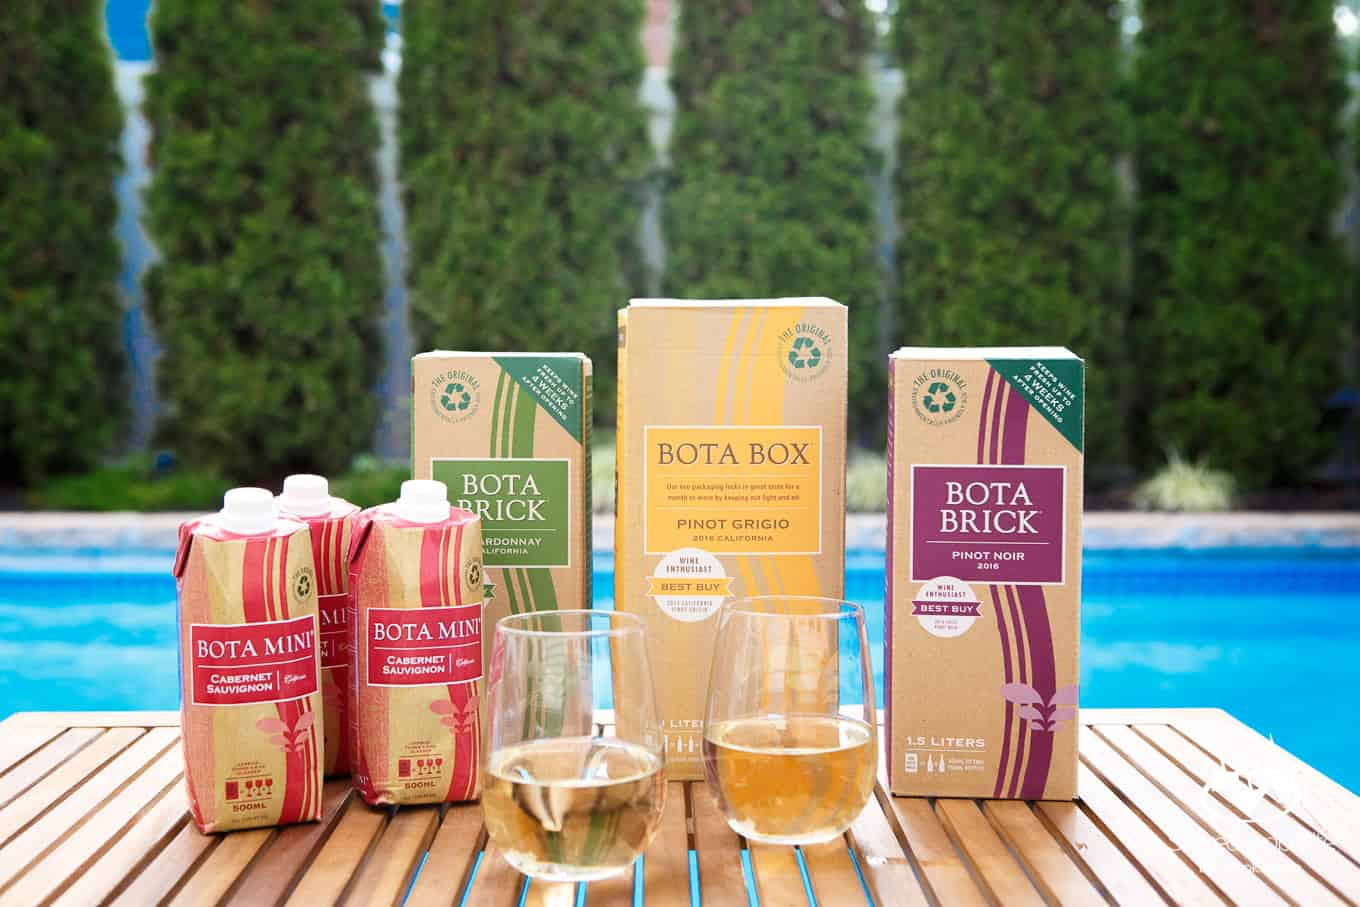 Bota Box Wine by the Pool